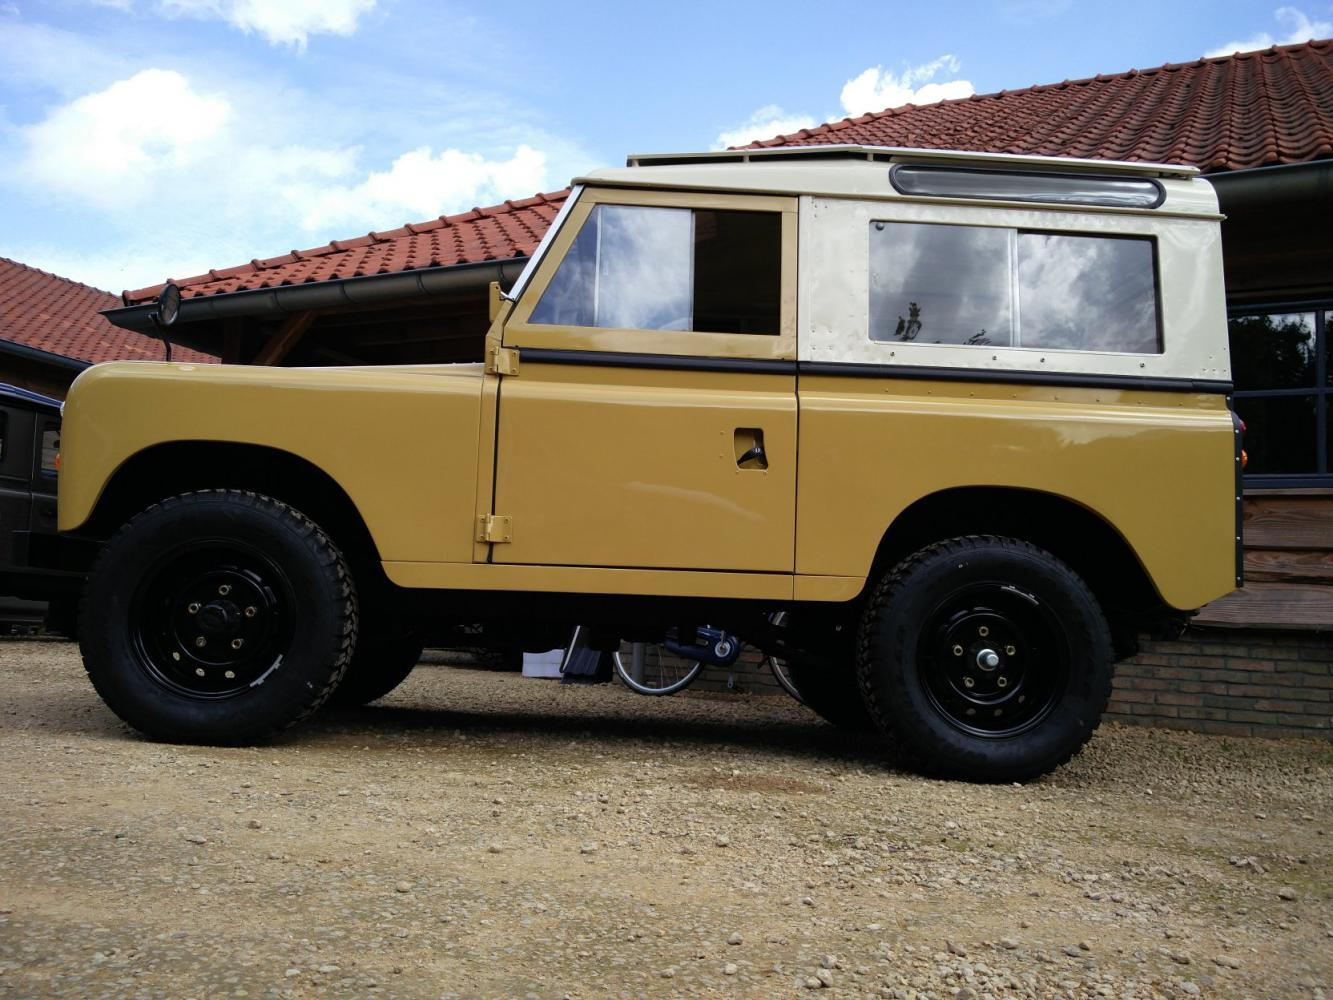 Click image for larger version  Name:1978 LR LHD Santana 88 Hardtop A Mustard Yellow left side low.jpg Views:157 Size:180.7 KB ID:289881